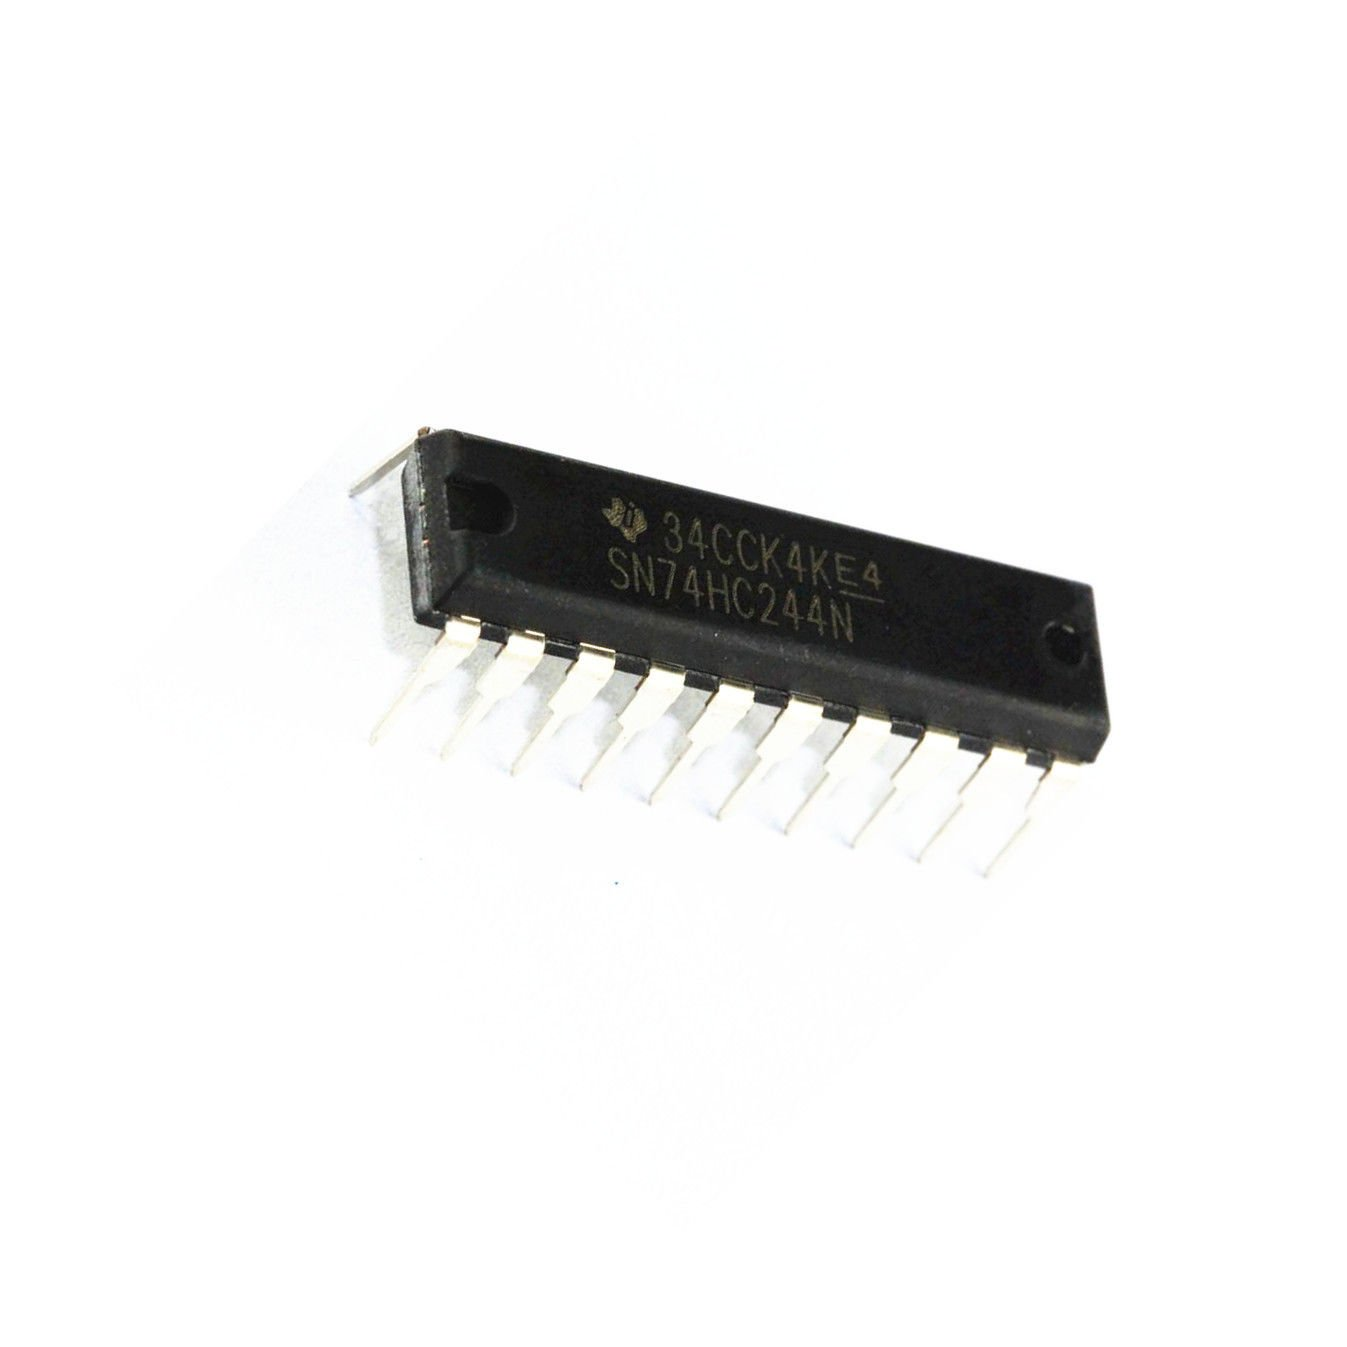 10PCS SN74HC244N 74HC244 DIP20 DIP-20 TI chip IC NEW